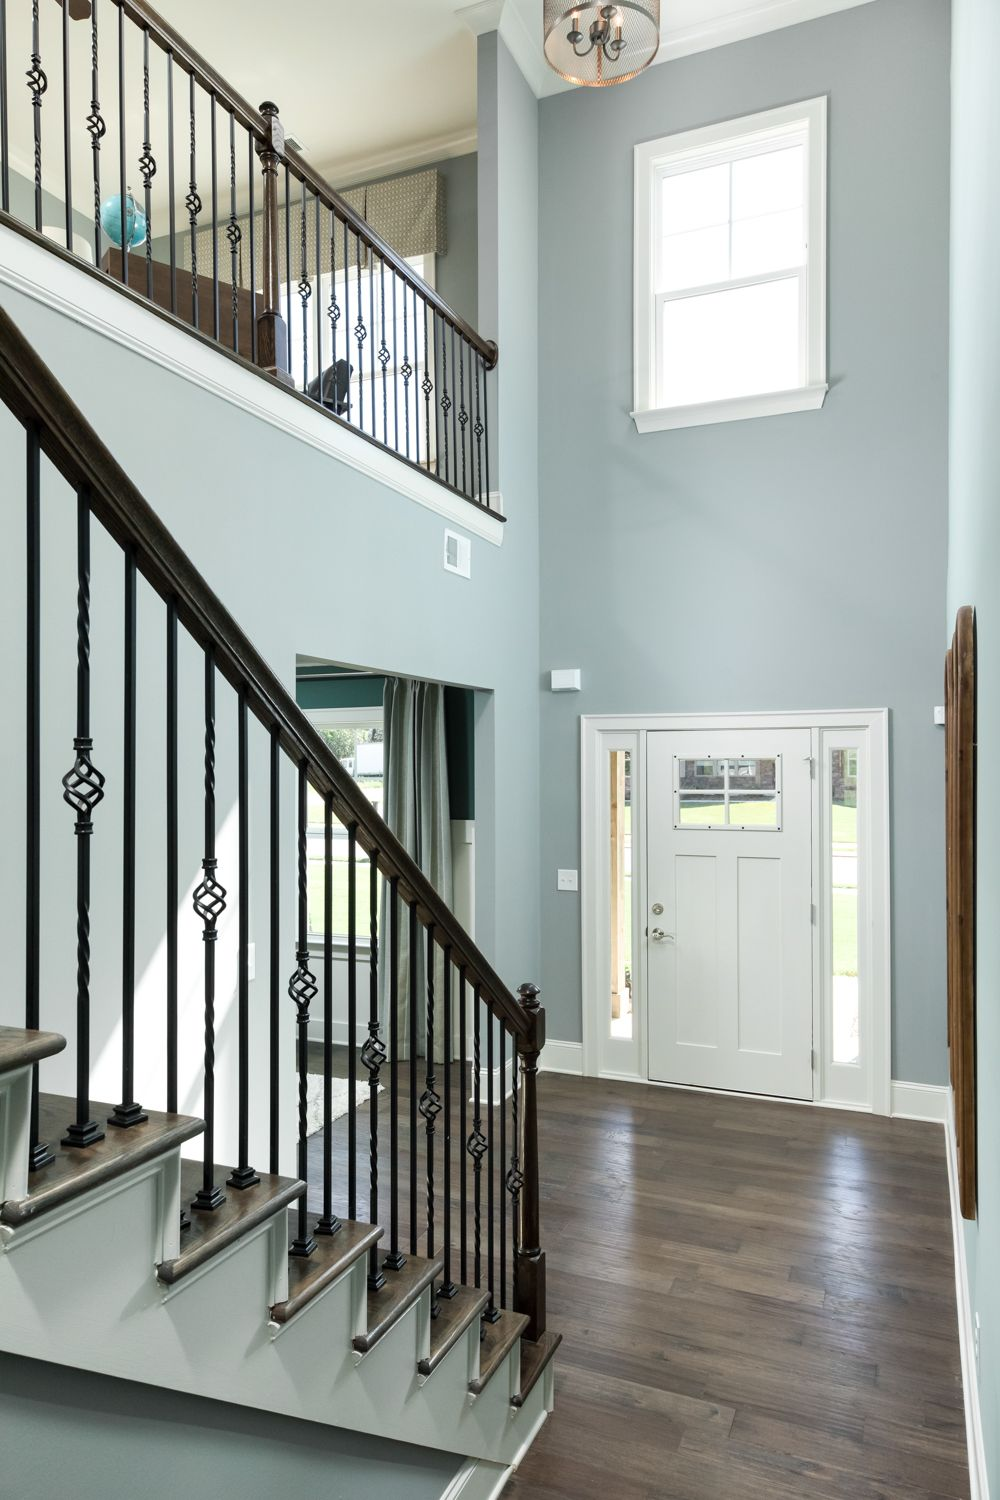 Two Story Entryway In The Abaco Home Plan The Loft Above Is Open To The Foyer Below Creating A Grand Entrance Into New Homes Foyer Design Building A New Home